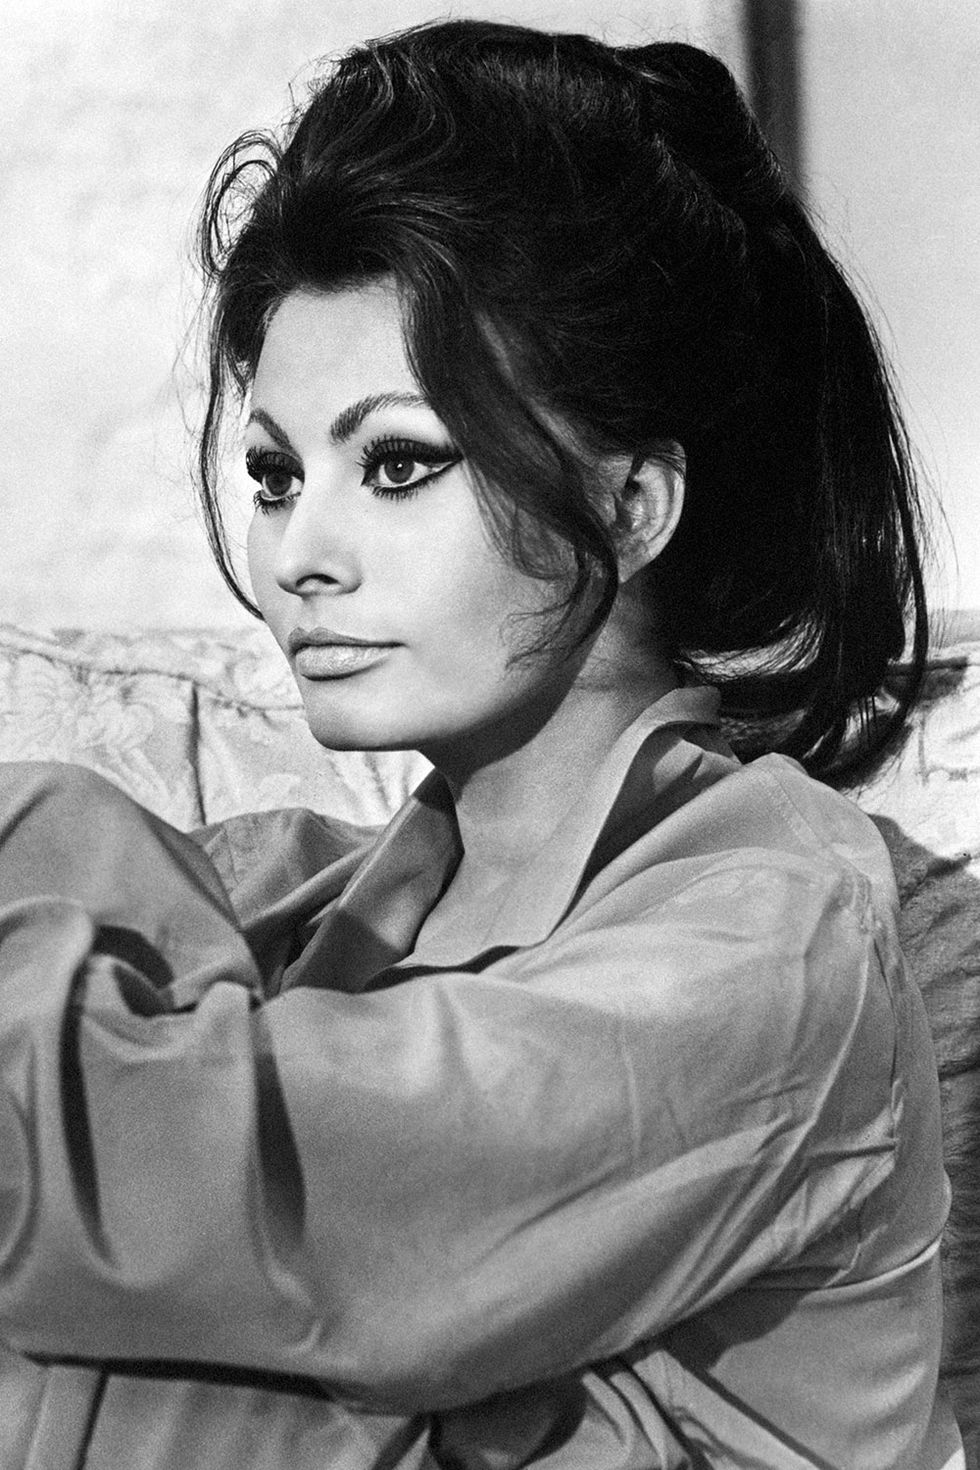 Sophia Loren, women empowerment, girl power, women empowering women, Italian Icons, Italian actresses, female leaders, most beautiful women, best female actresses